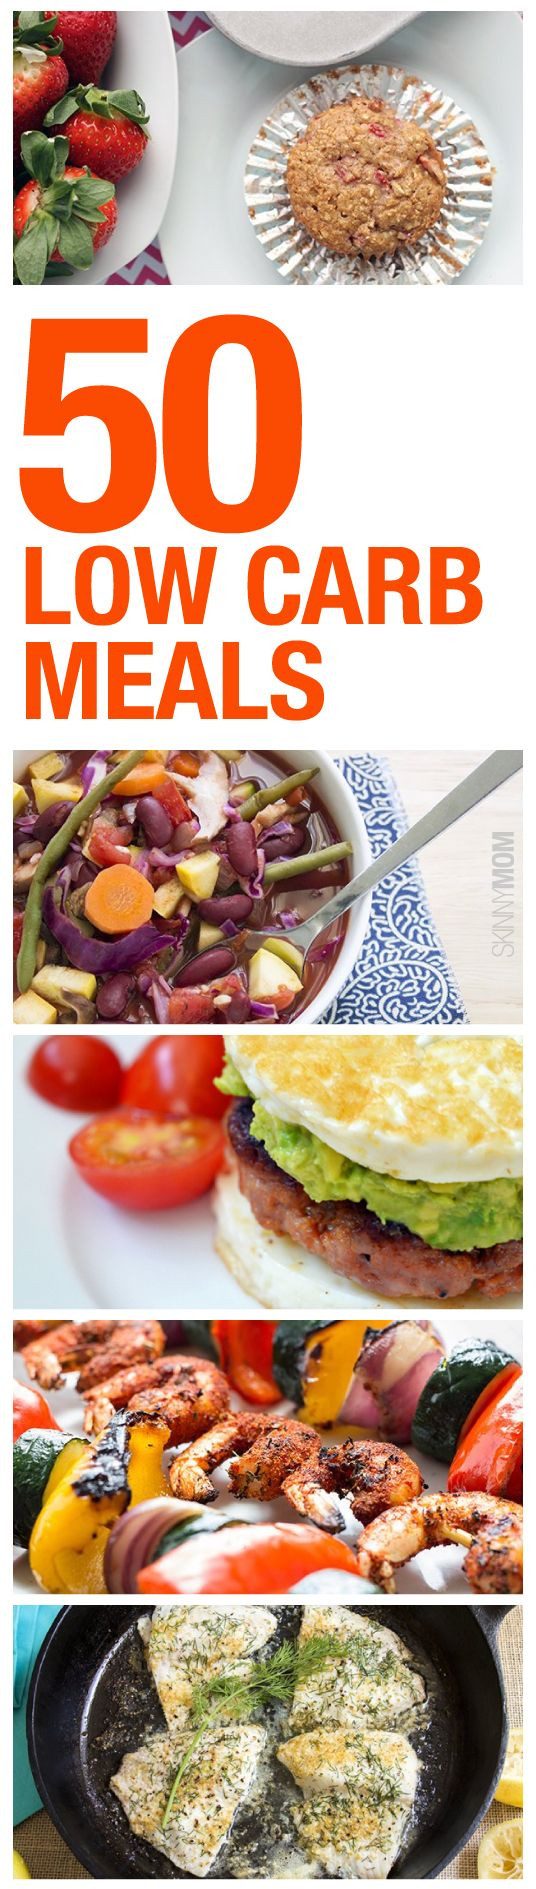 Watching your carb intake? Check out these 50 low carb breakfasts, lunches, dinners, and snack options that will keep your body in shape and your tastebuds happy!